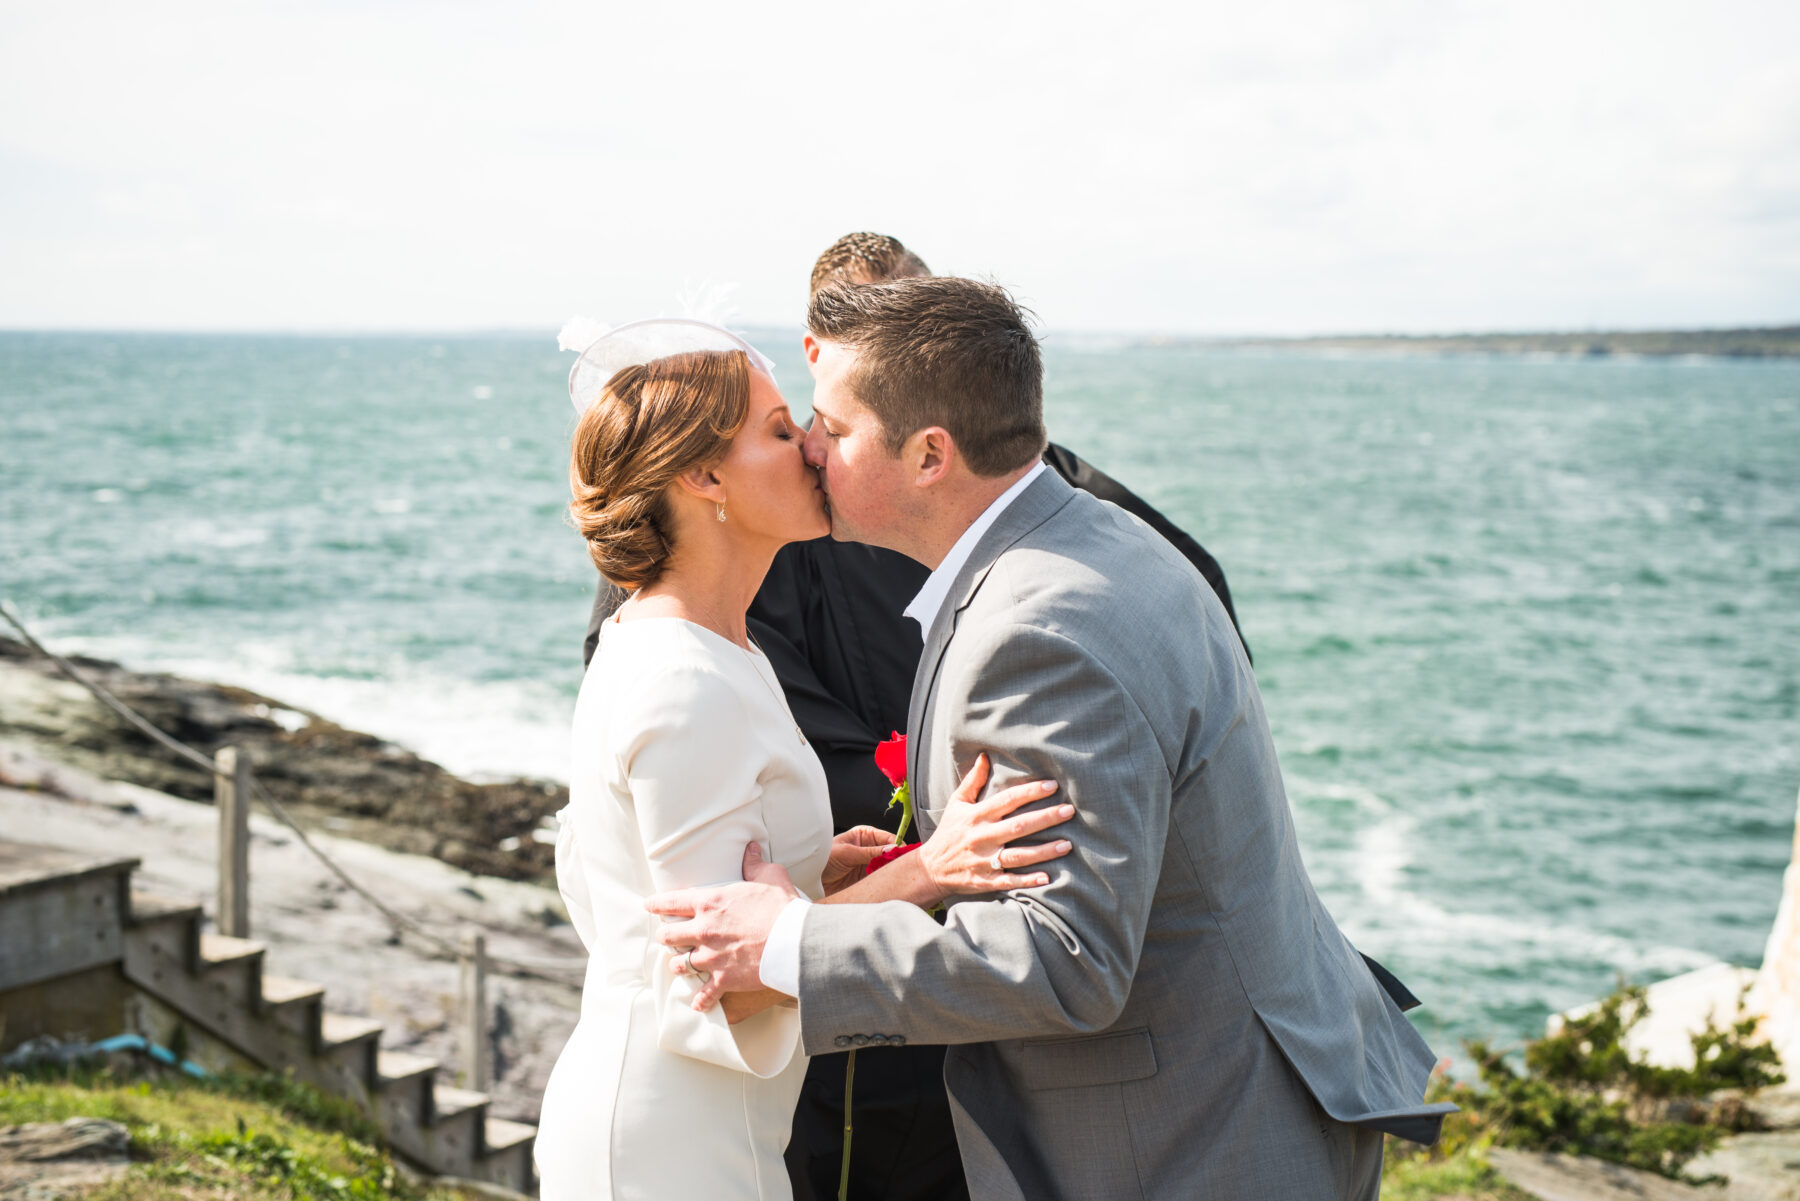 Castle Hill Newport Elopement Danielle and Mike Blueflash Photography 6